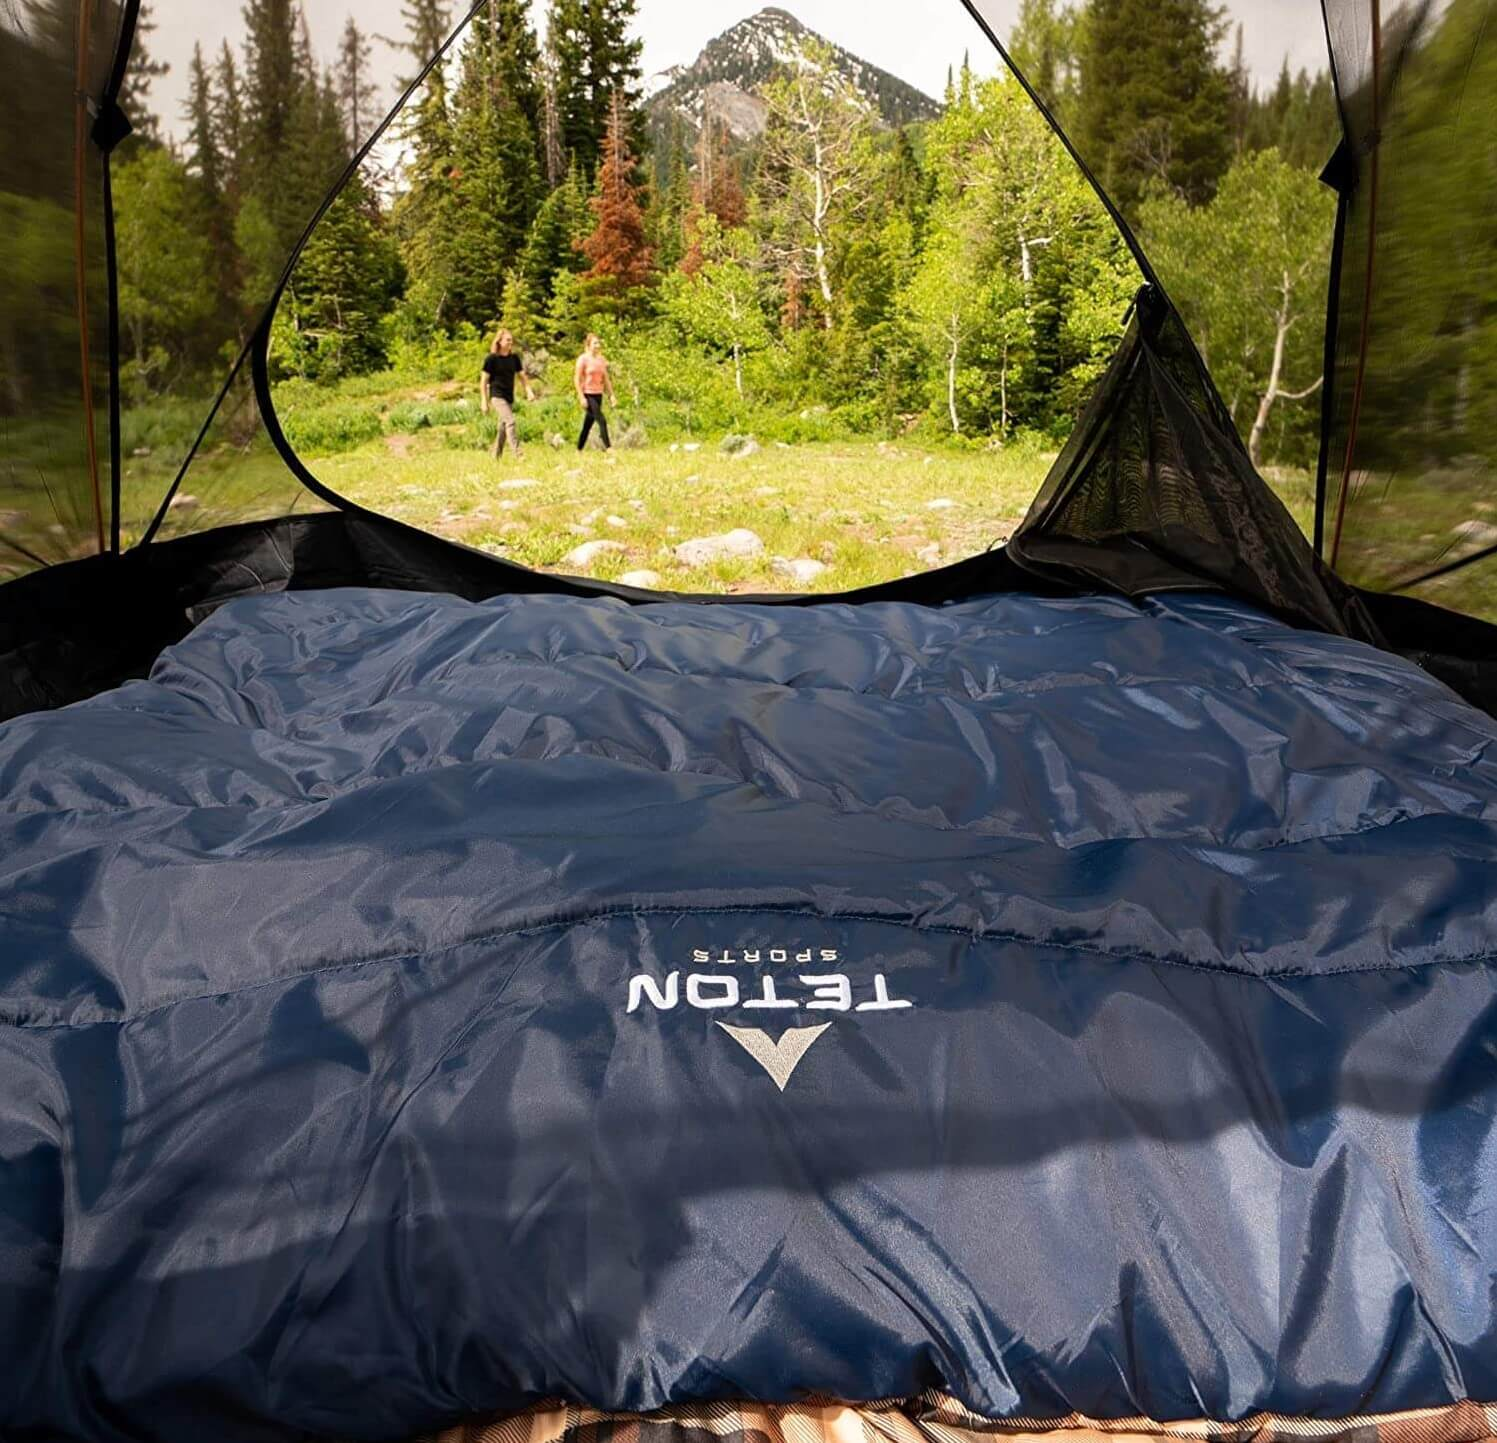 Best Double Sleeping Bag for Backpacking